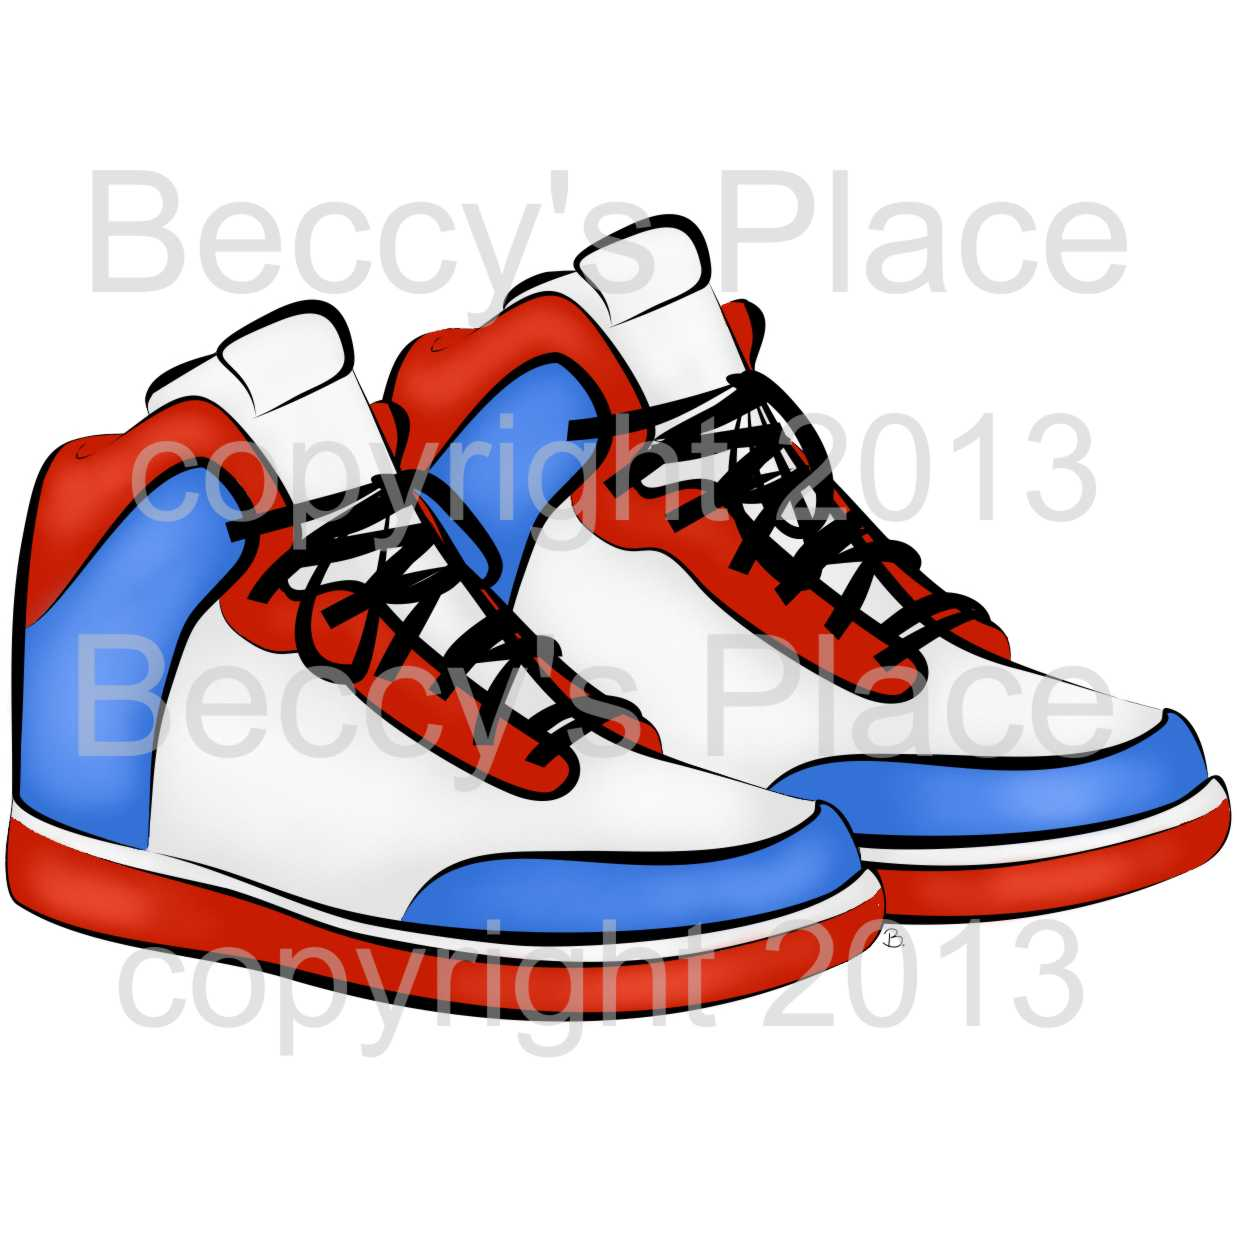 Basketball Shoes Clipart.